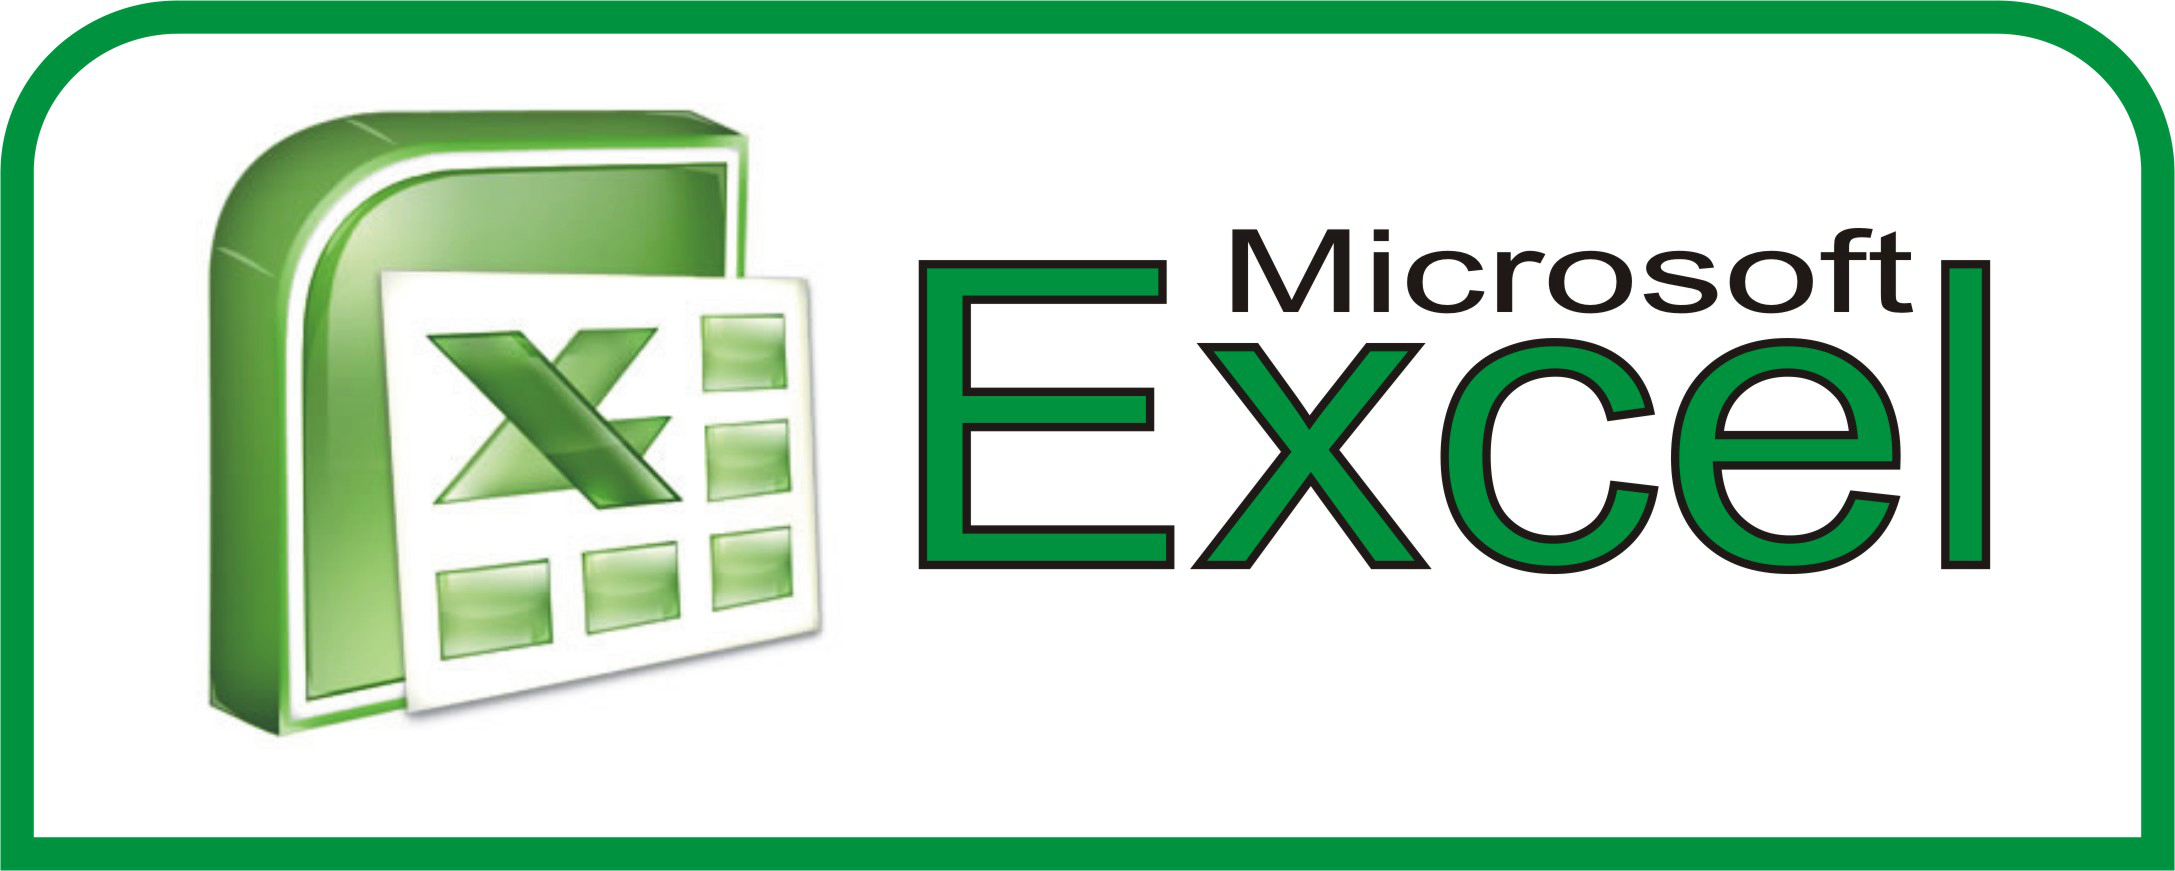 Ediblewildsus  Mesmerizing  Excel Shortcuts You Probably Didnt Know About  Techdissected With Lovely How To Make A Chart In Excel  Besides Count Duplicates In Excel Furthermore Insert Calendar In Excel  With Breathtaking How To Password Protect Excel File Also How To Sort Columns In Excel In Addition Excel Calculate Age And Formula Excel As Well As Excel Shortcut For Strikethrough Additionally Excel Npv From Techdissectedcom With Ediblewildsus  Lovely  Excel Shortcuts You Probably Didnt Know About  Techdissected With Breathtaking How To Make A Chart In Excel  Besides Count Duplicates In Excel Furthermore Insert Calendar In Excel  And Mesmerizing How To Password Protect Excel File Also How To Sort Columns In Excel In Addition Excel Calculate Age From Techdissectedcom